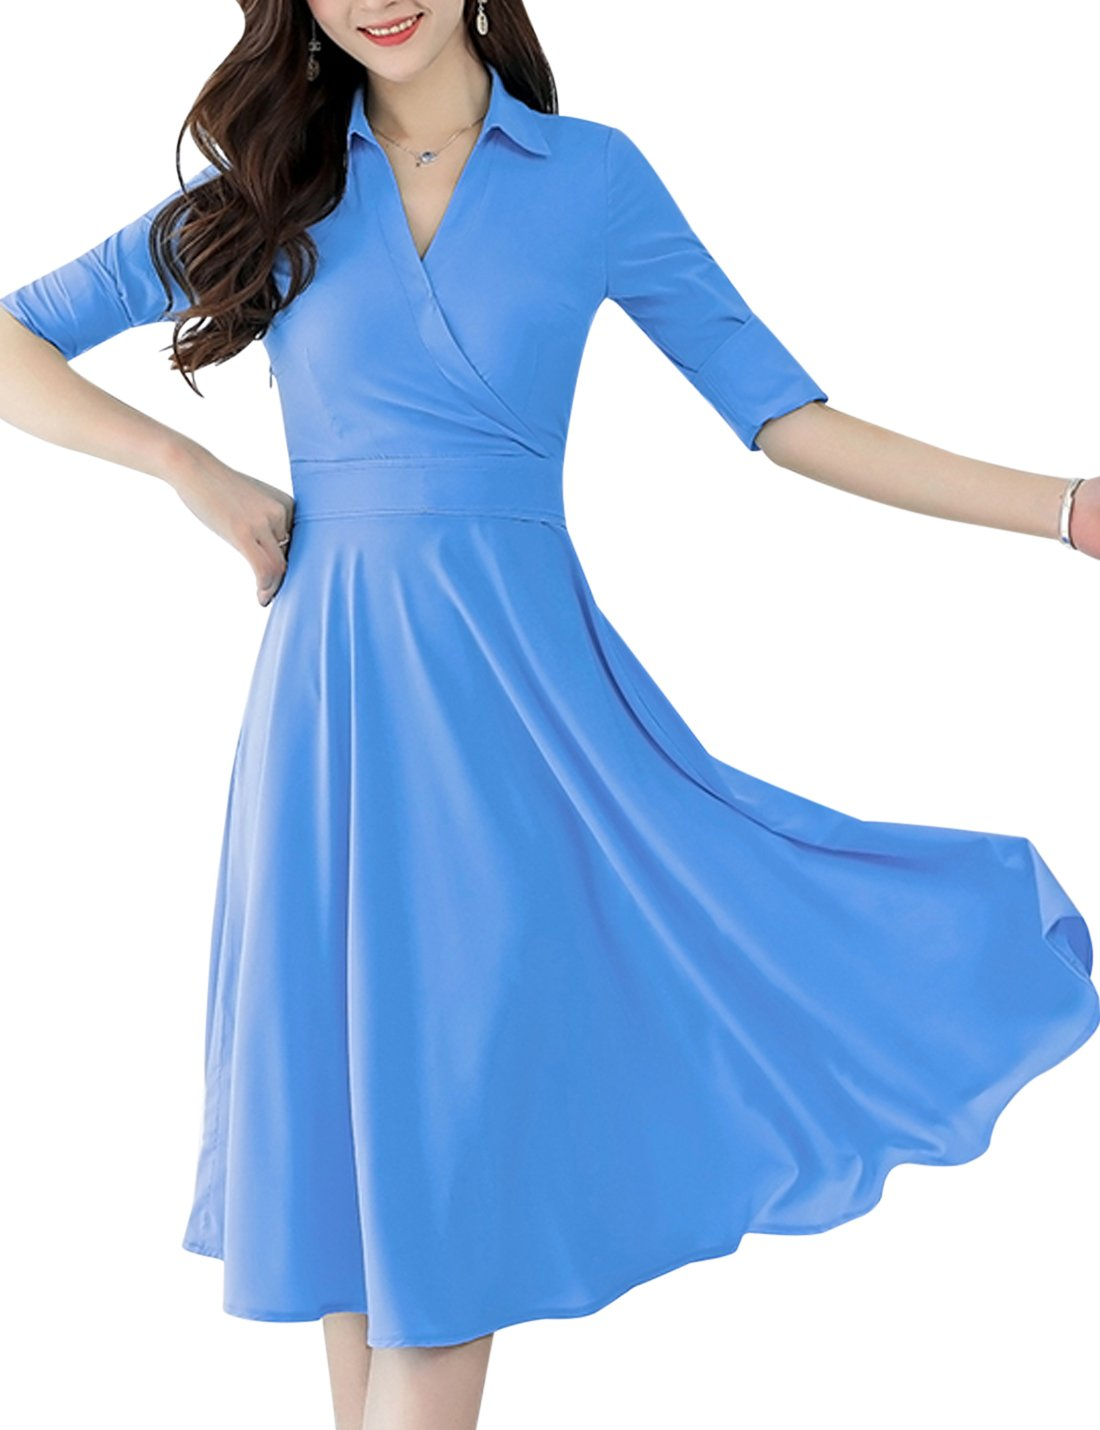 Available at Amazon: Tanming Women's V-Neck Fit and Flare Long Midi Chiffon Dress